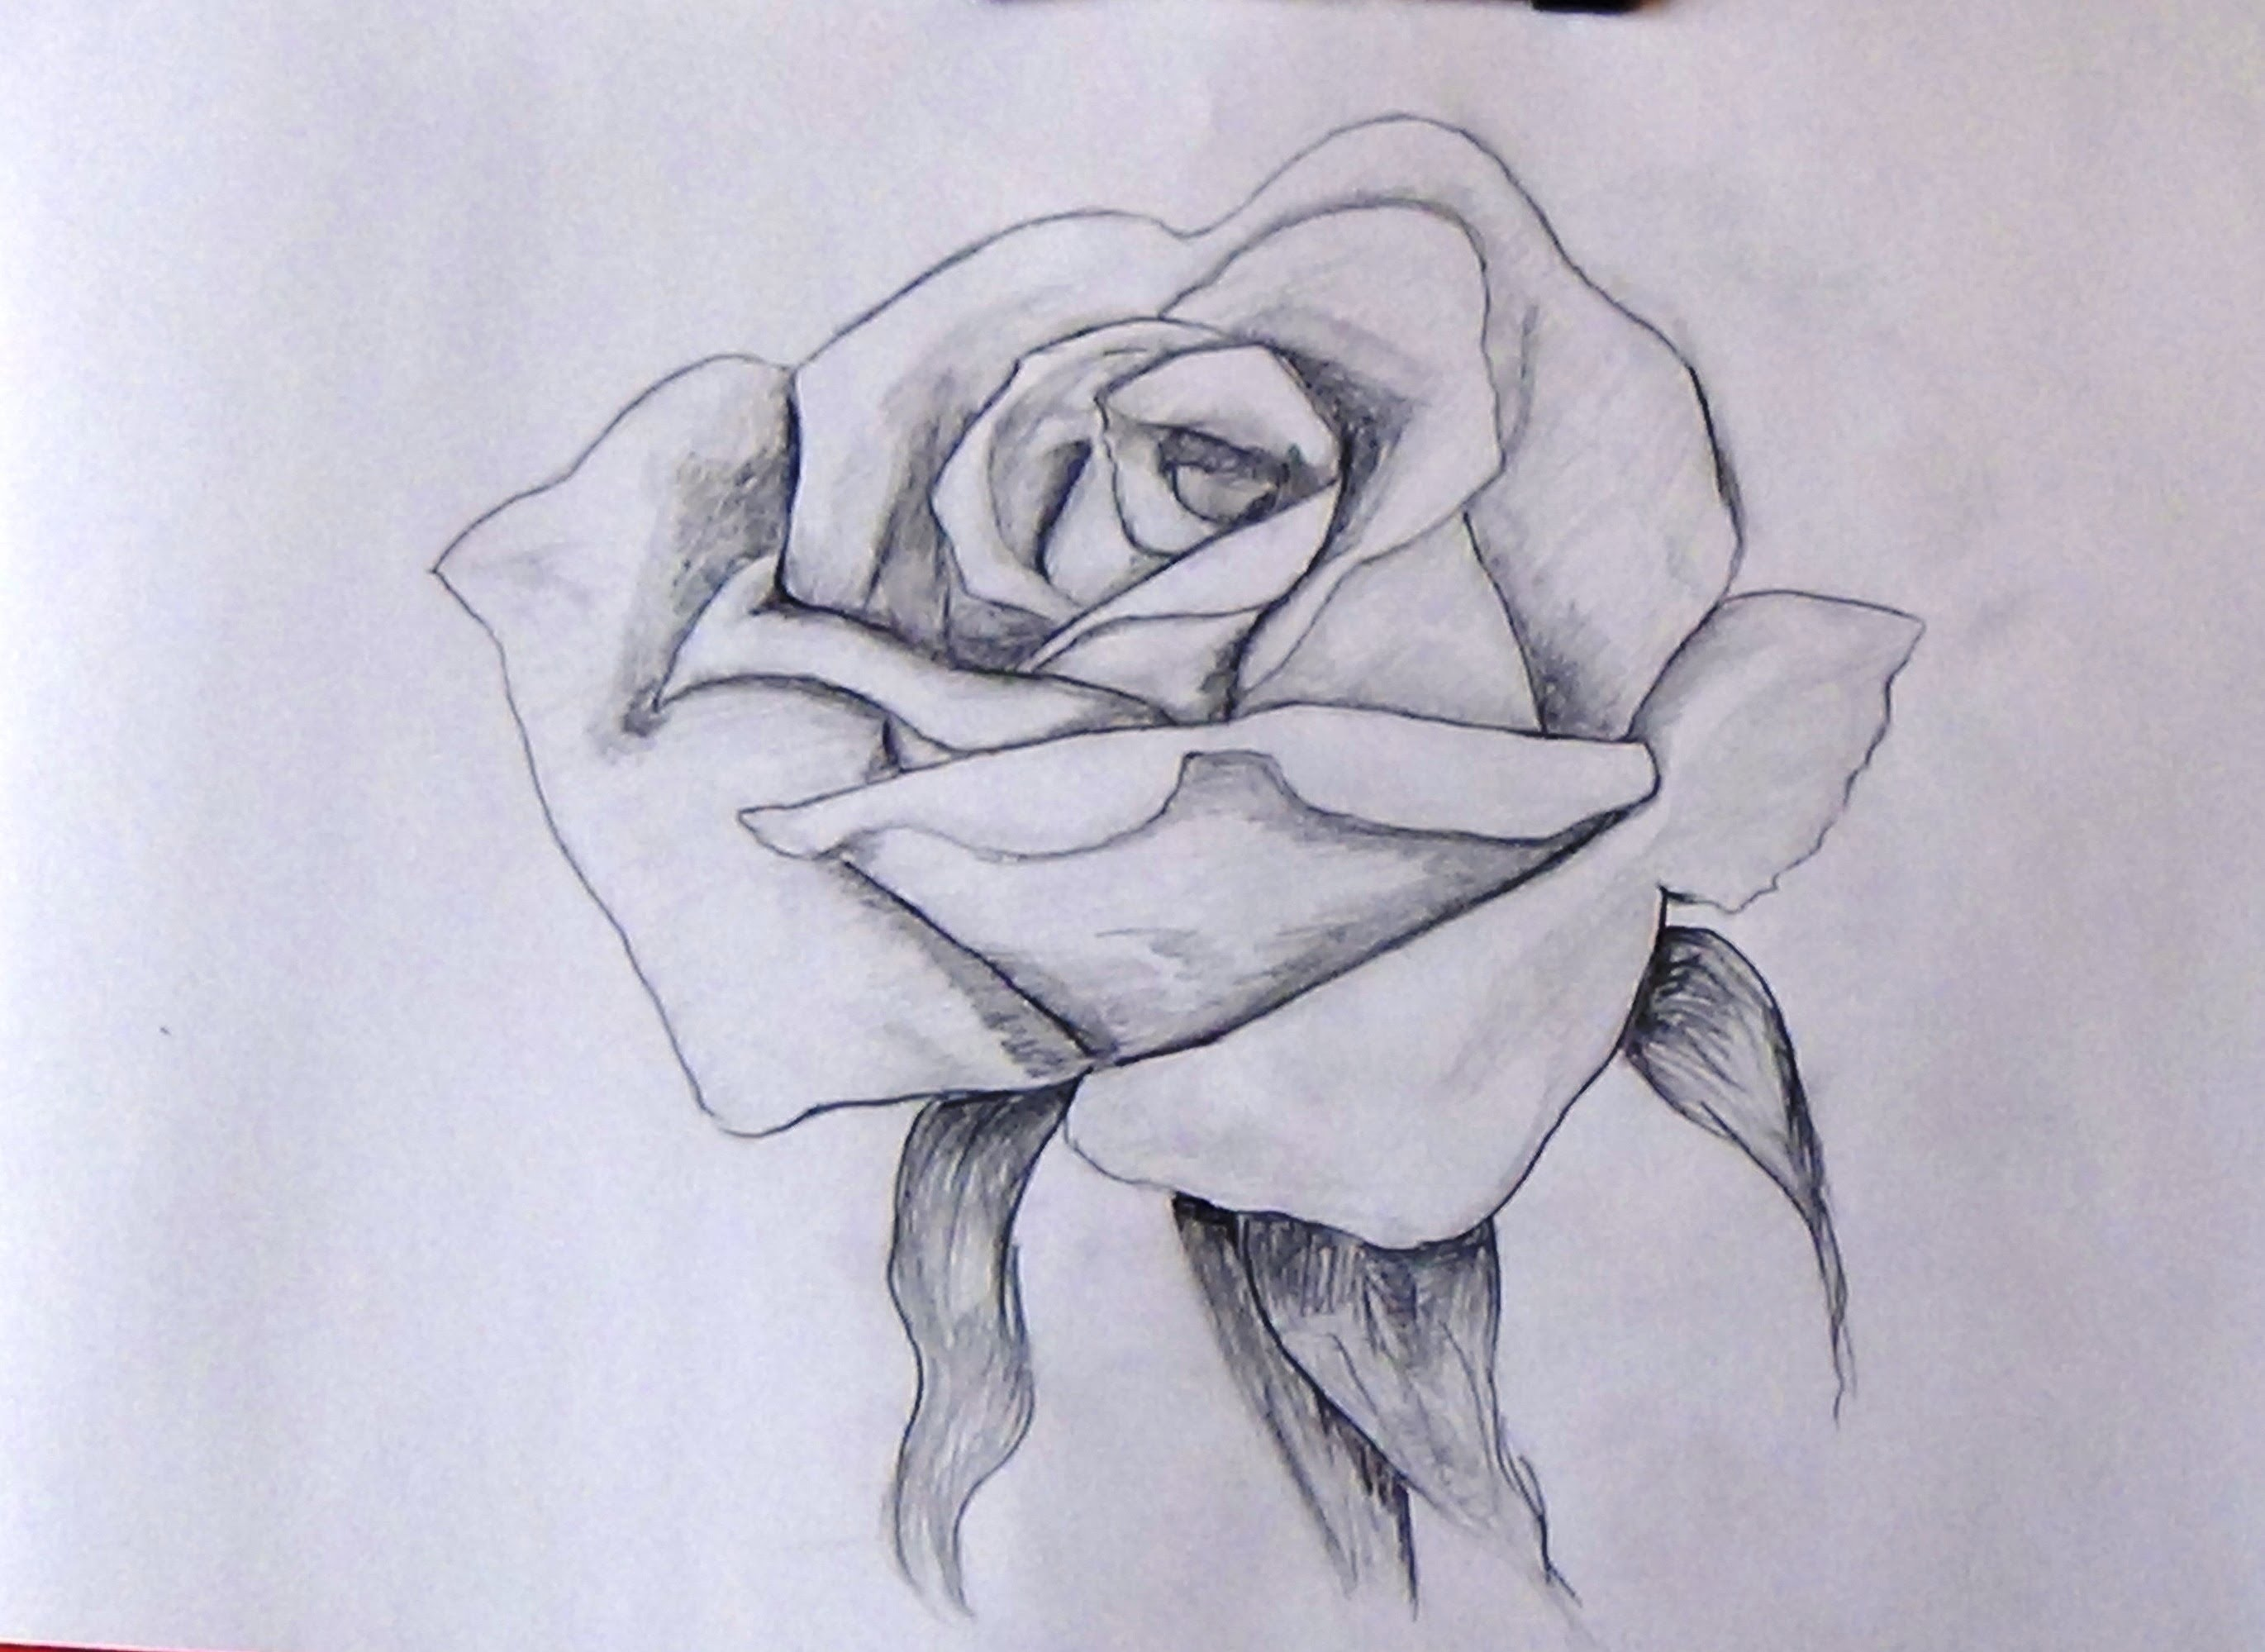 How To Sketch A Rose Step By Step Tutorial For Beginners - YouTube